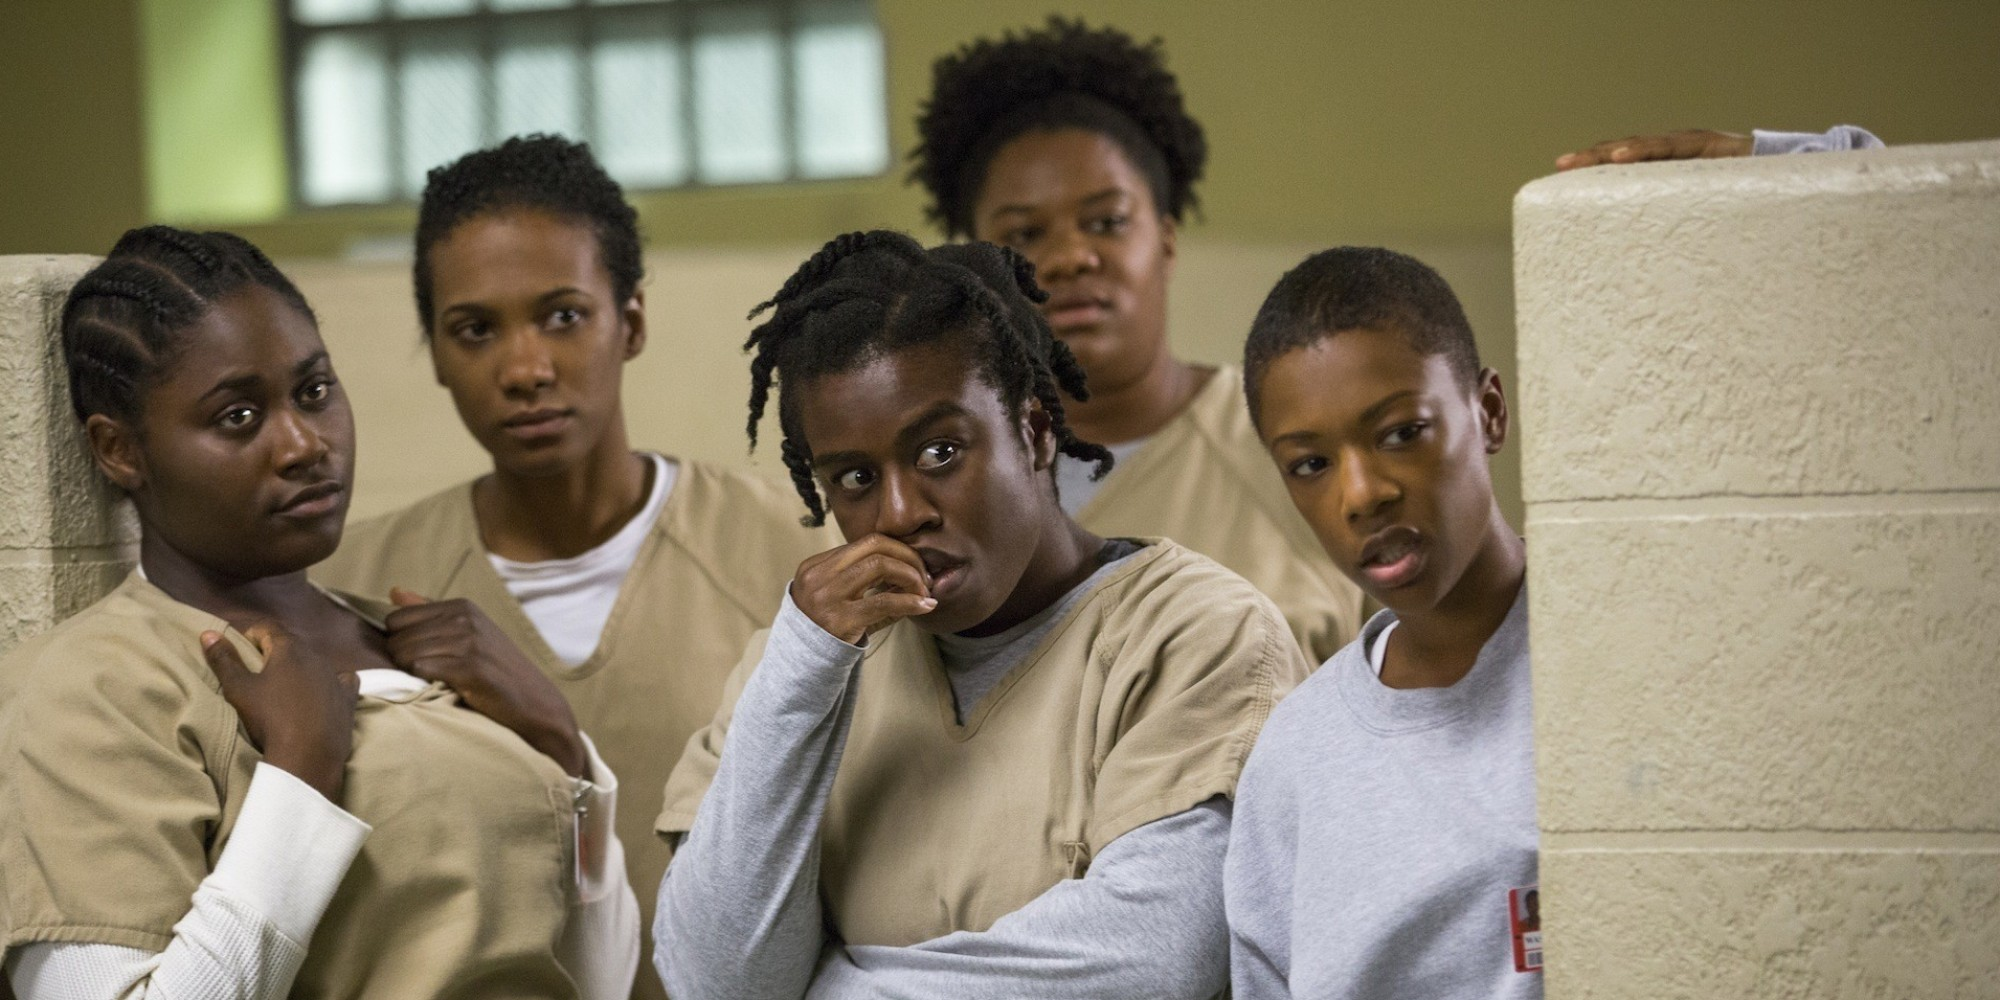 39 orange is the new black 39 season 2 review the rage under the entertaining surface huffpost. Black Bedroom Furniture Sets. Home Design Ideas